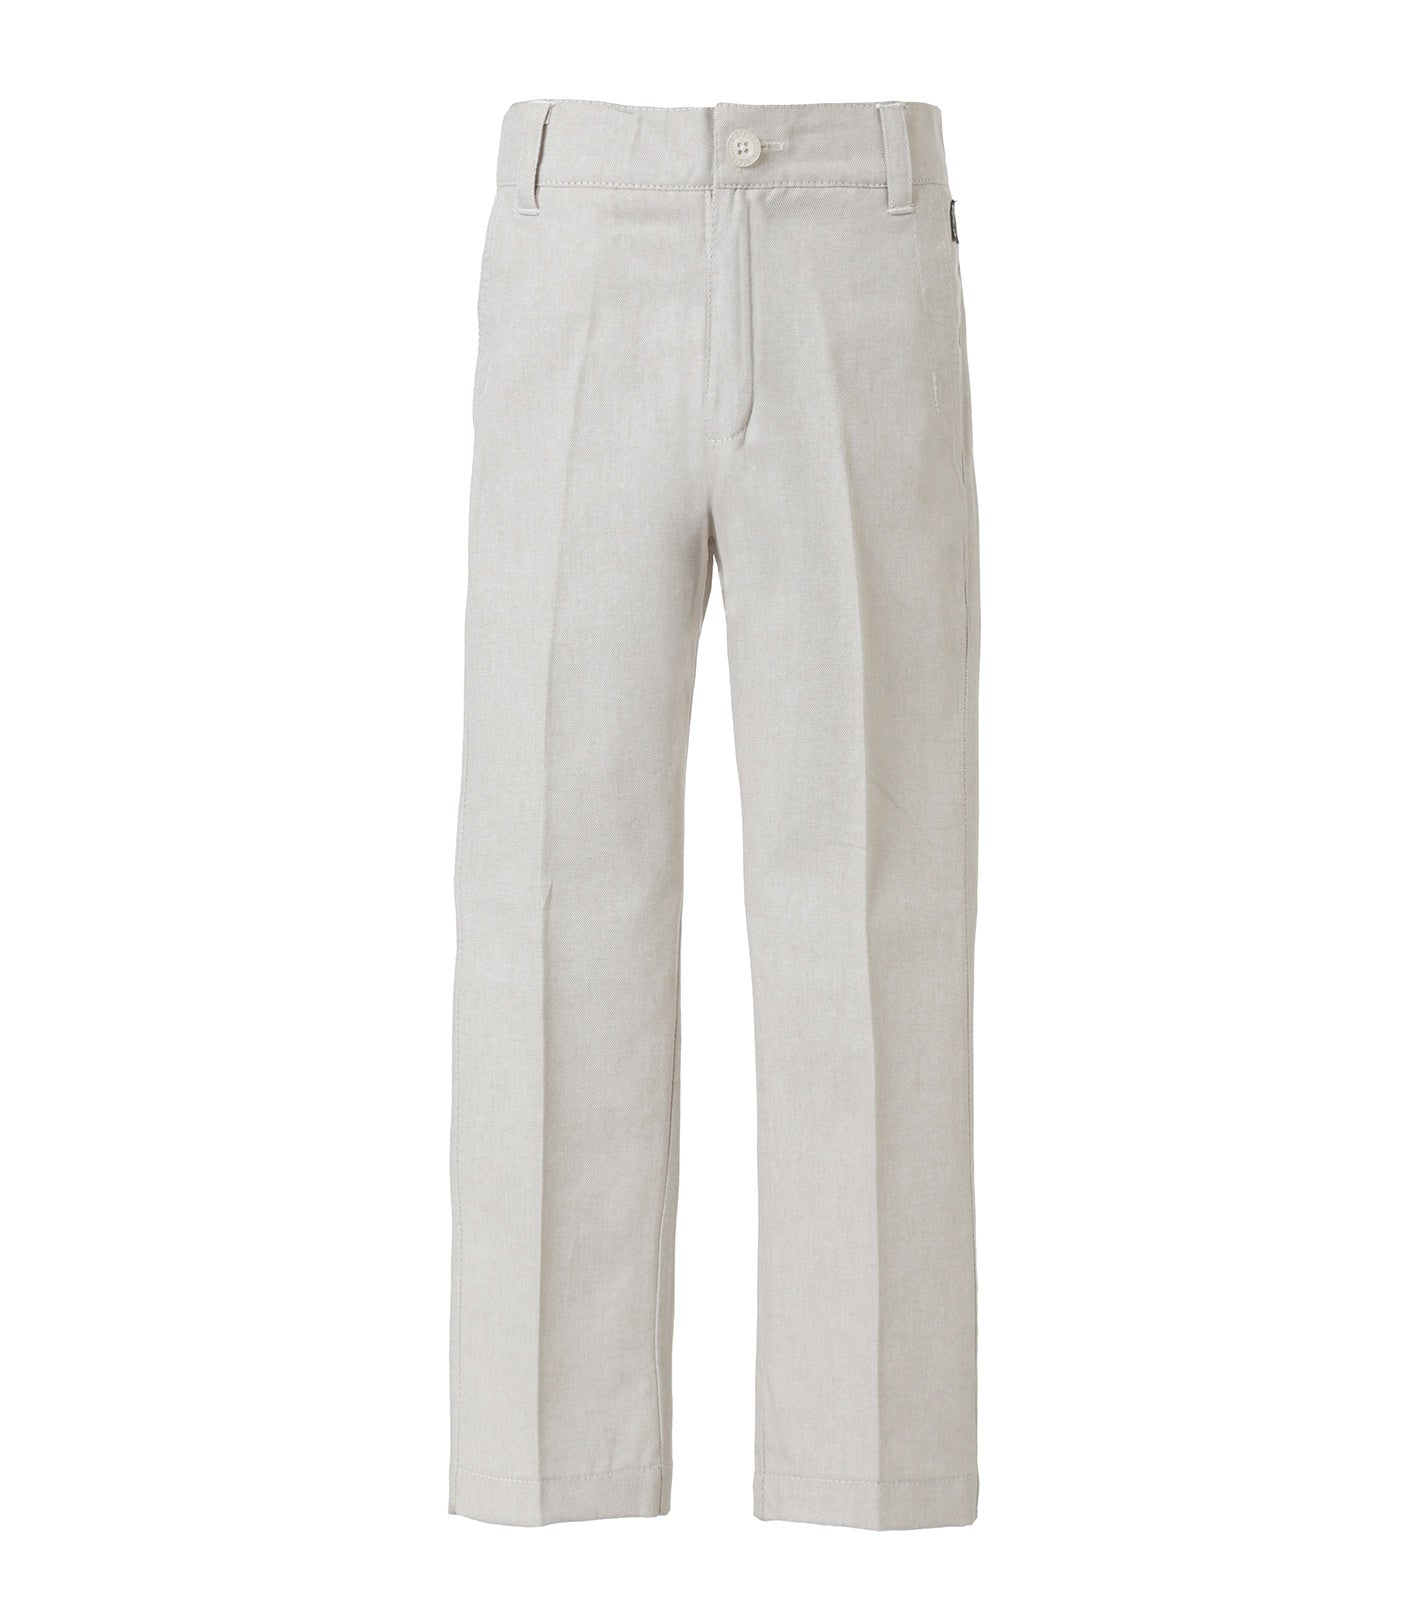 Casual Style Pants in Light beige